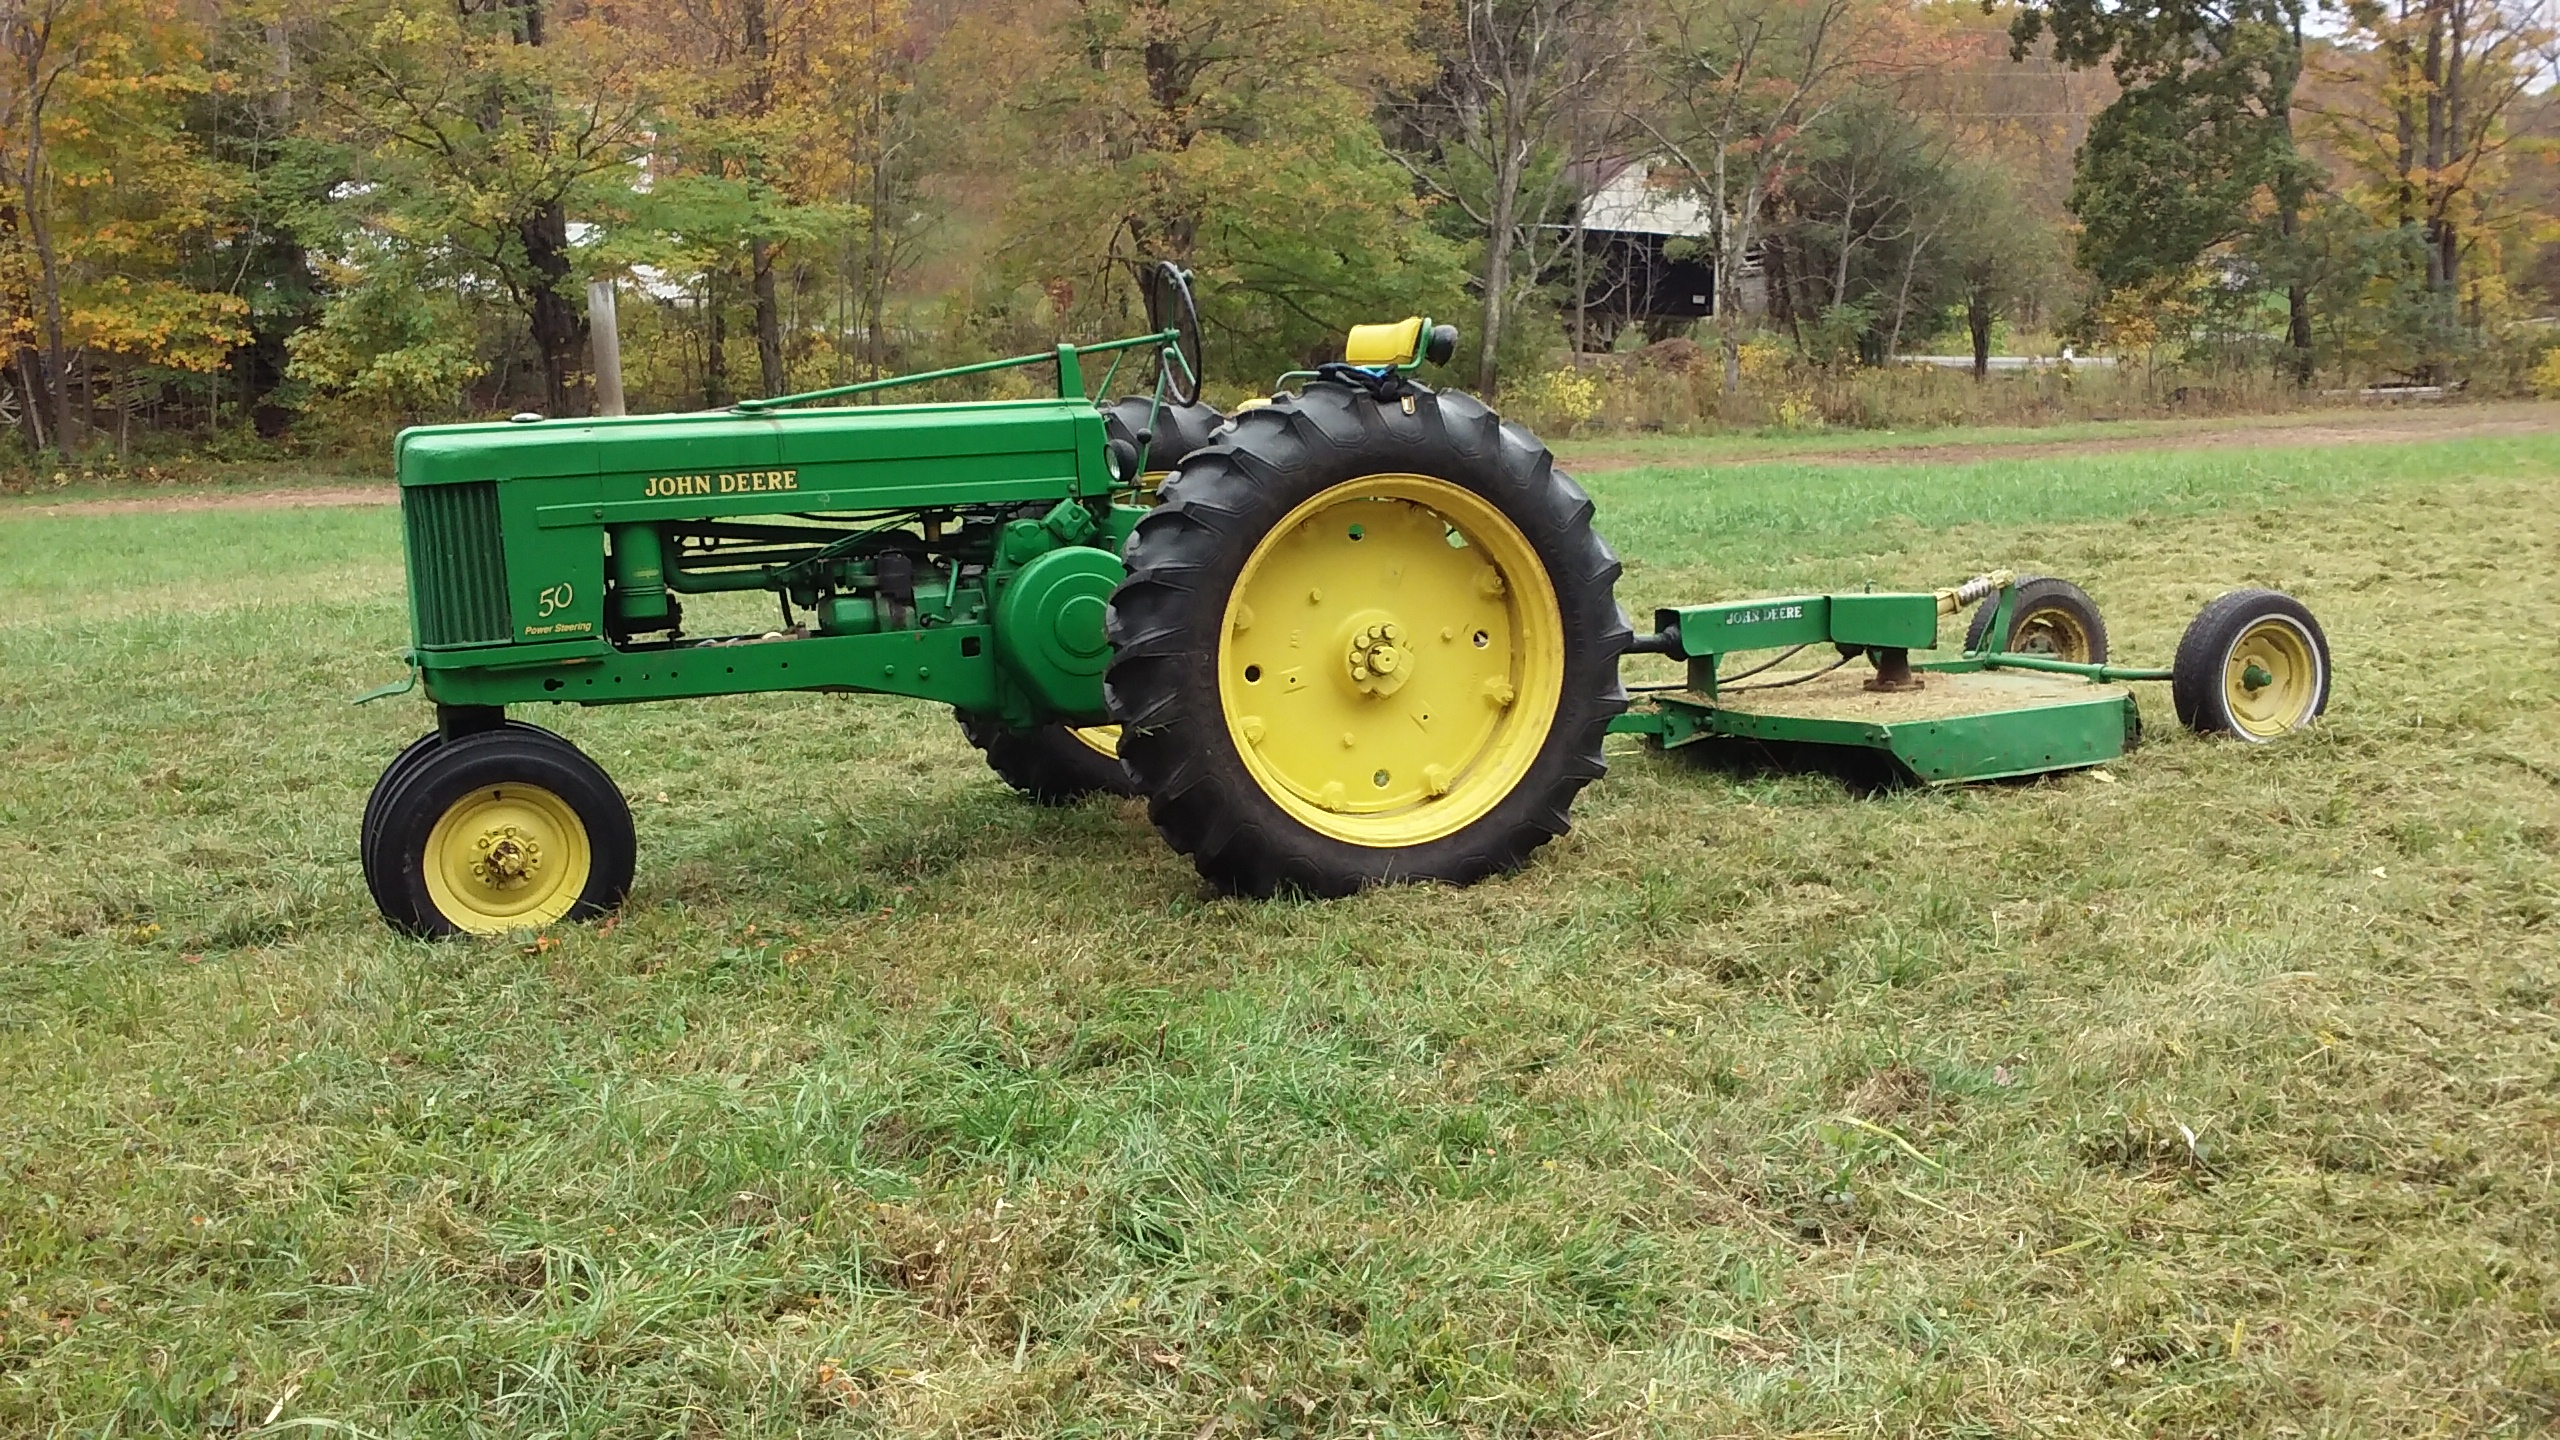 Click image for larger version.  Name:had my jd model 50 out some today-10-6-17.jpg Views:14 Size:1.99 MB ID:465850